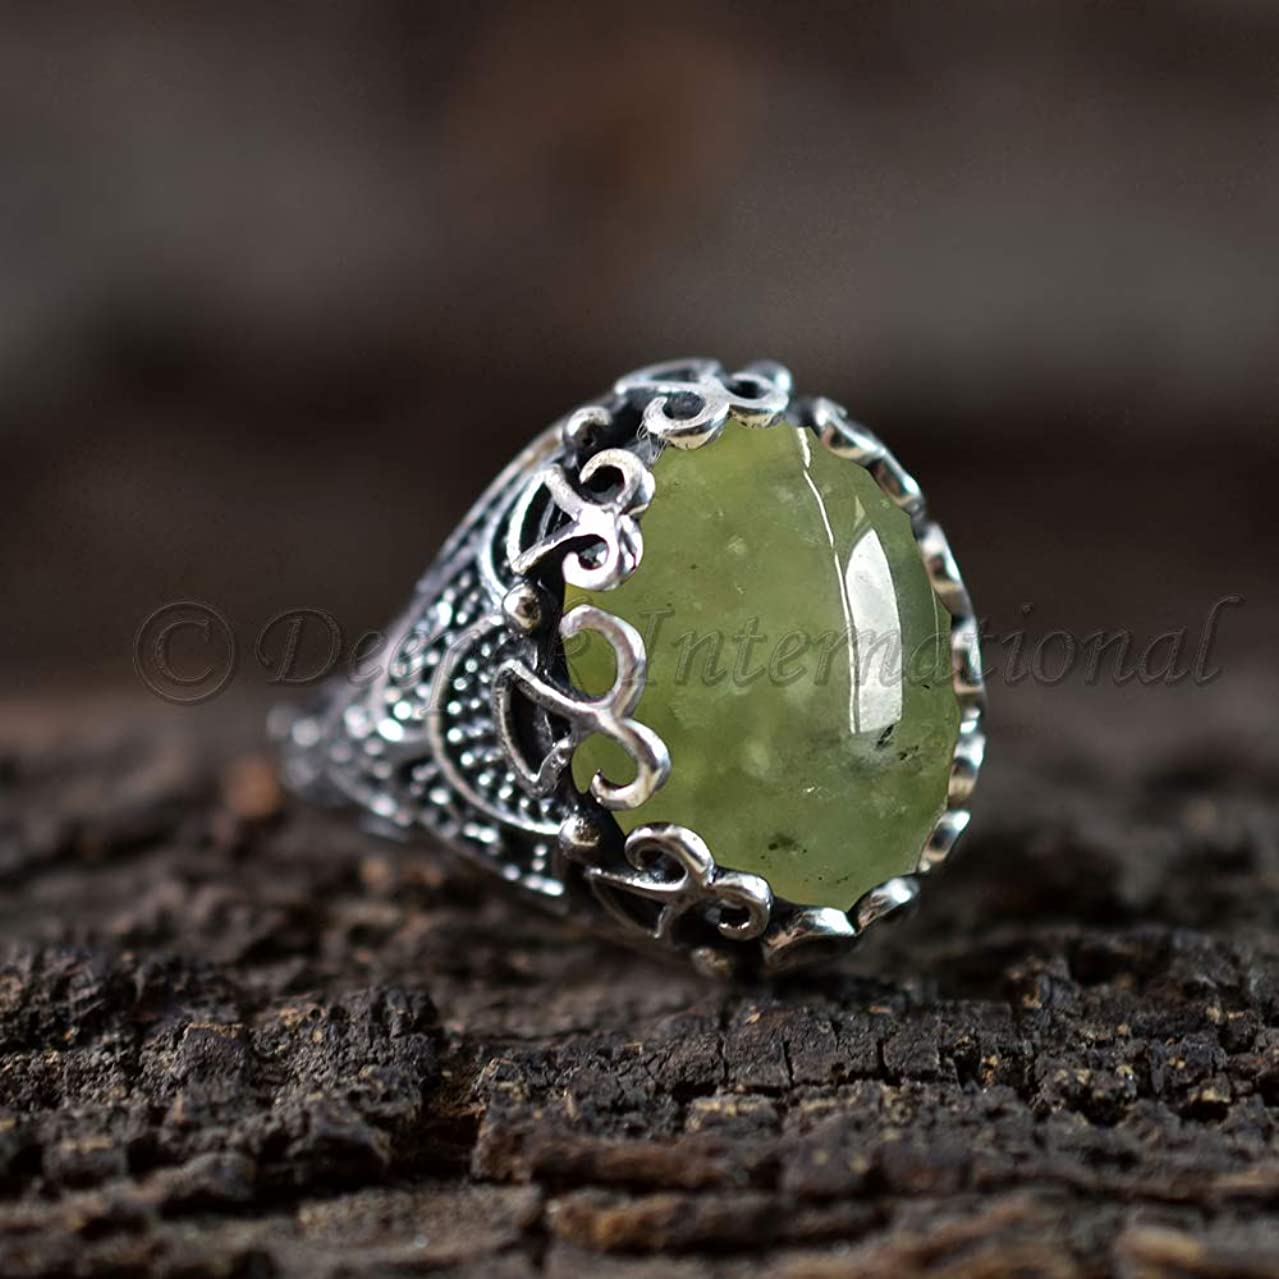 Bohemian Ring Natural Prehnite Gemstone 925 Sterling Silver Jewelry Artisan Made Jewlry Anniversary Gift for Wife Gypsy Tribal Ring for Gift